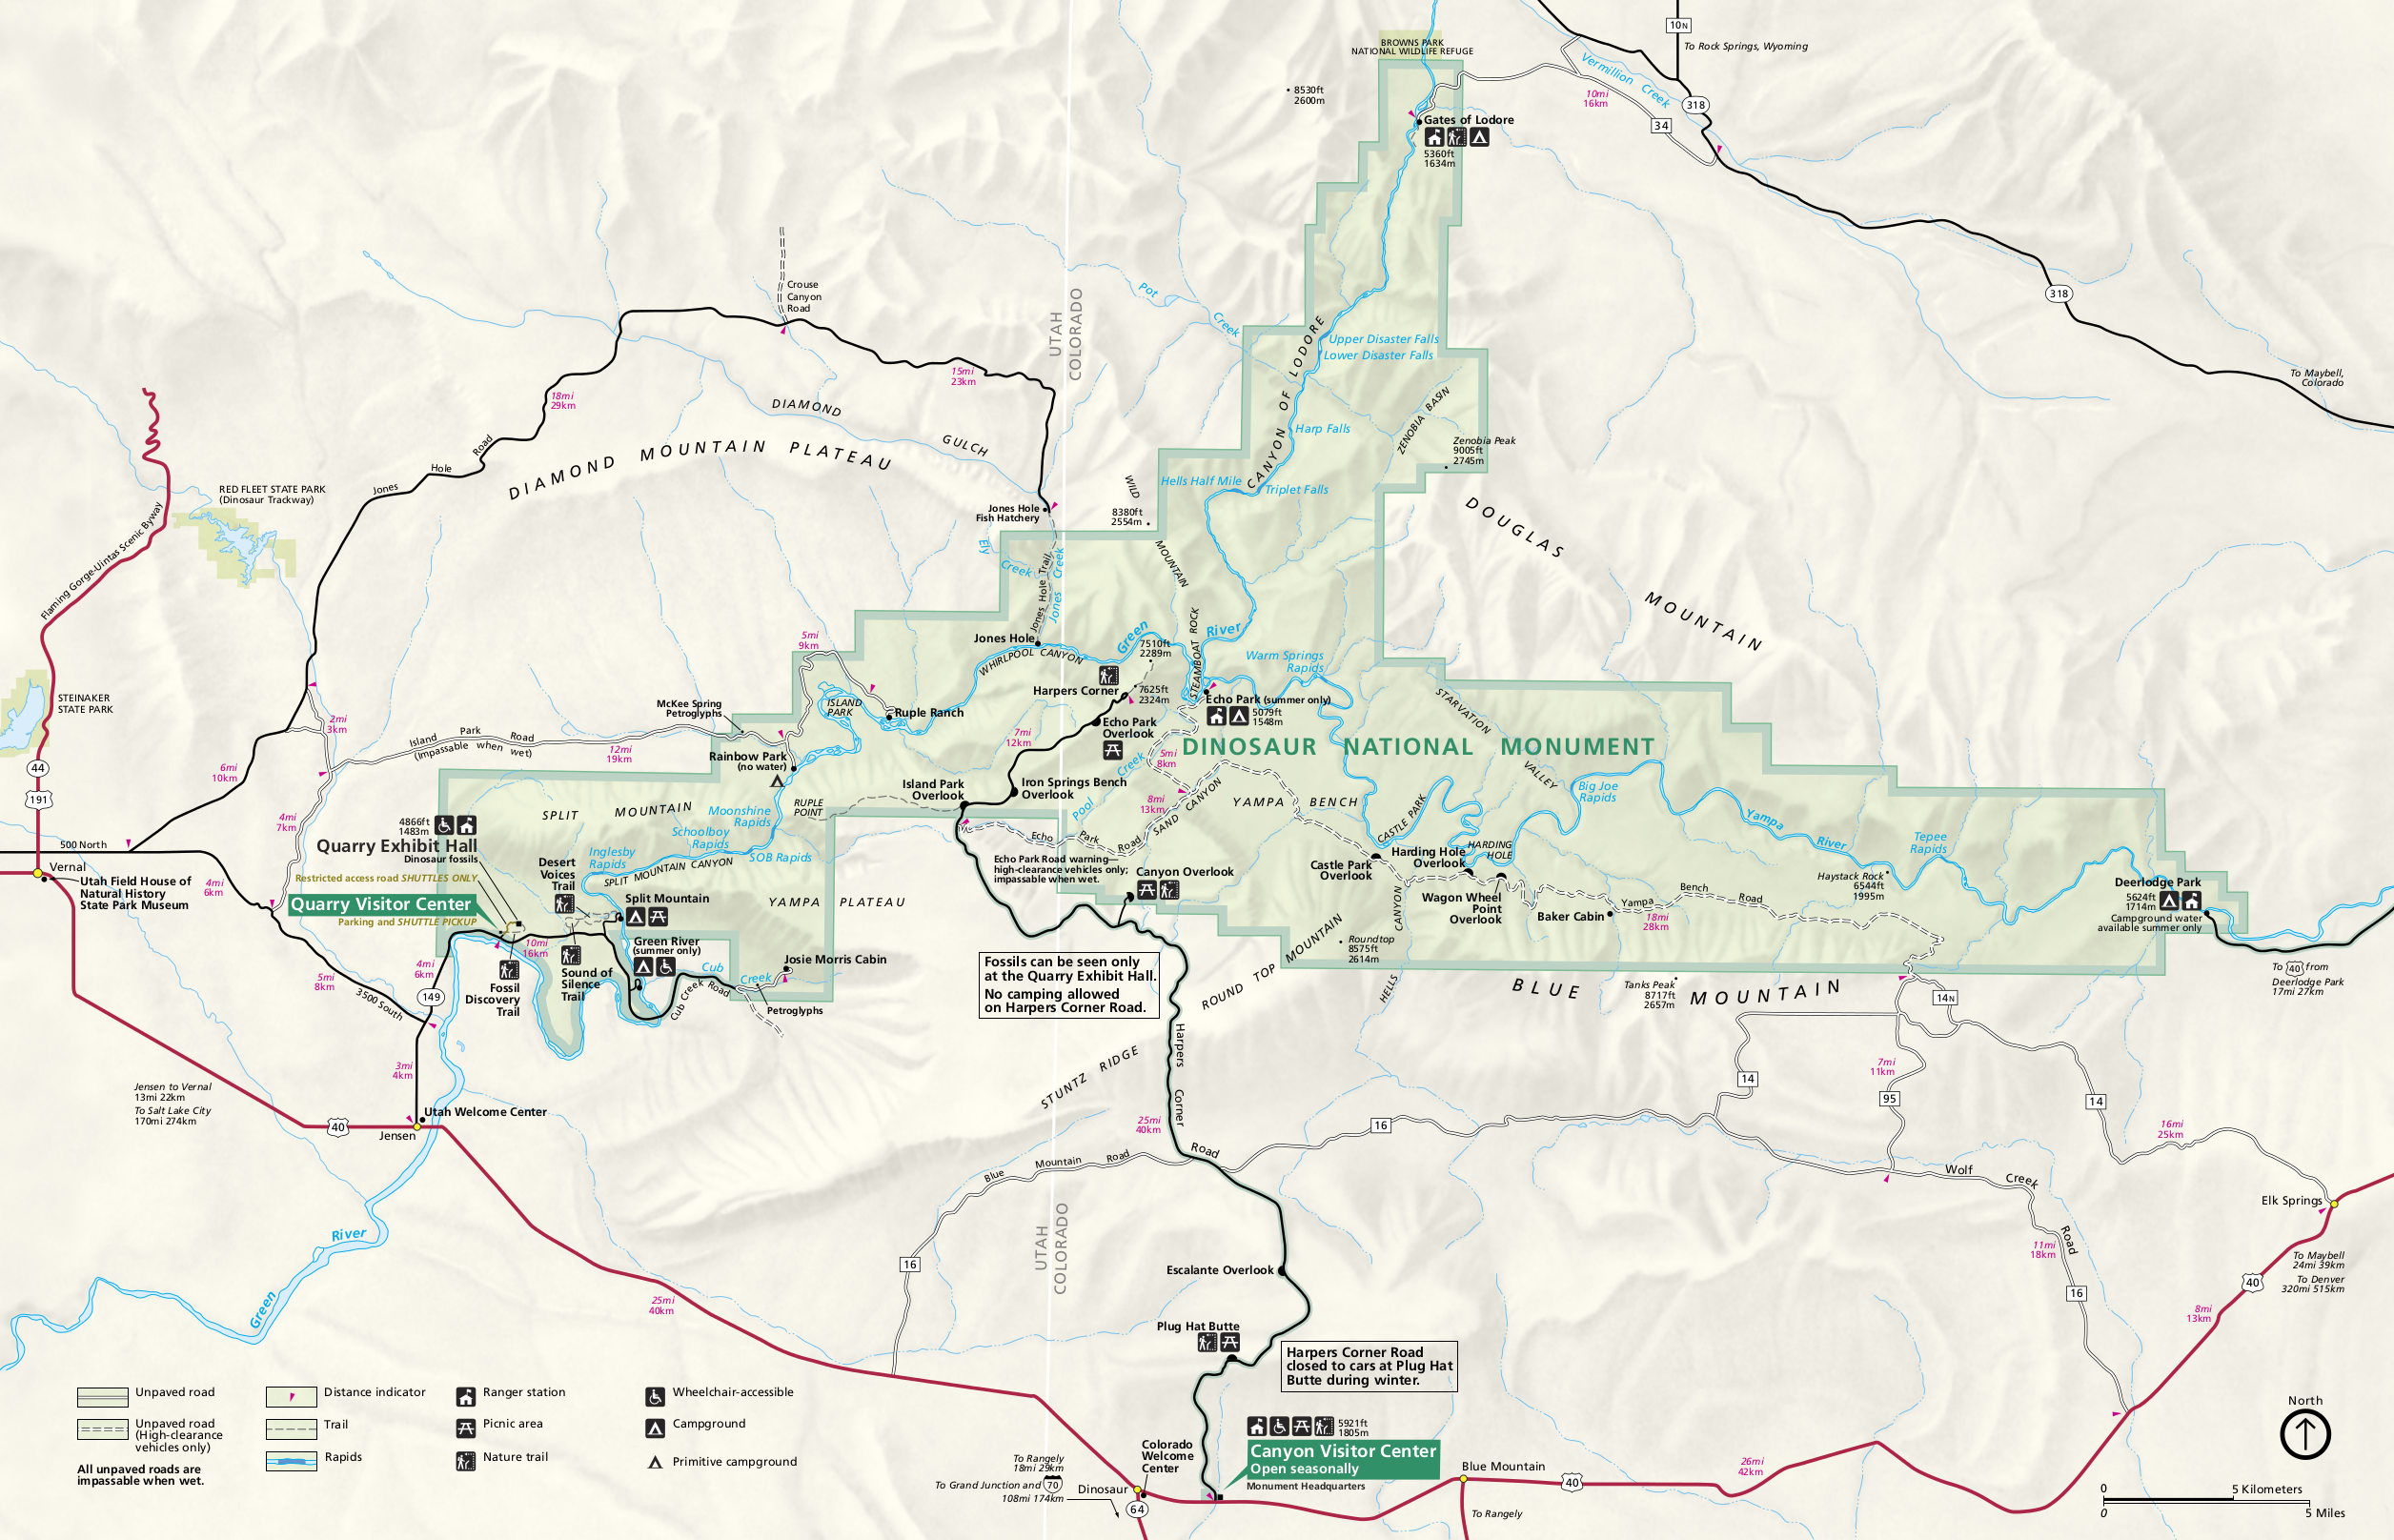 Dinosaur National Monument Map Dinosaur Maps | NPMaps.  just free maps, period.